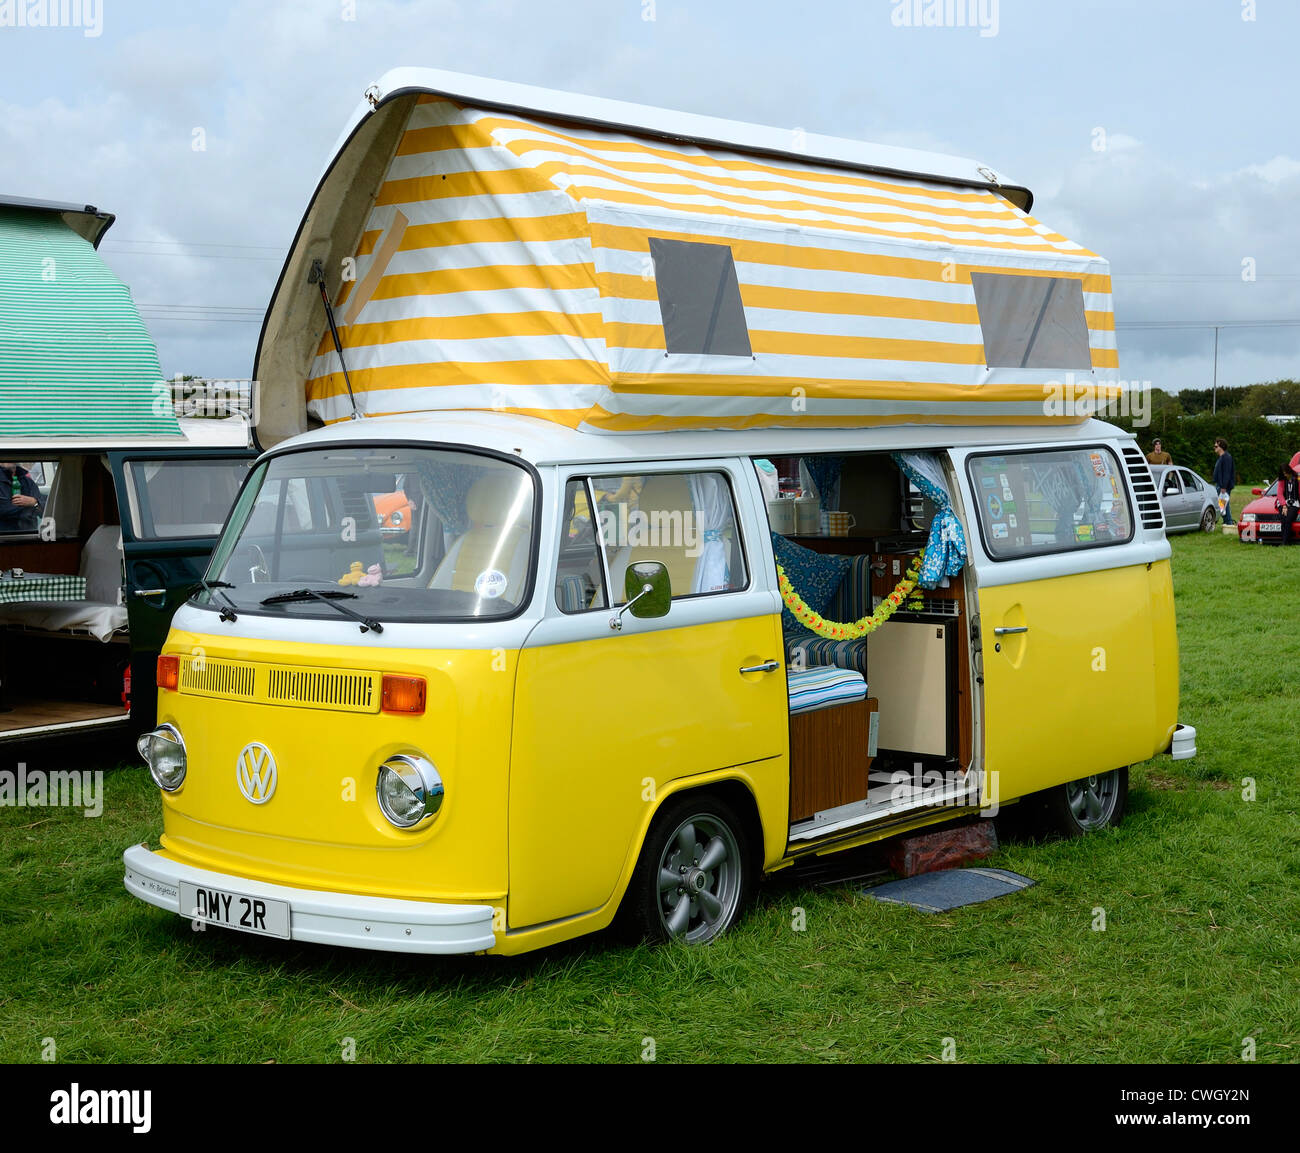 a vw camper van at a volkswagen rally in cornwall uk stock photo royalty free image 50159613. Black Bedroom Furniture Sets. Home Design Ideas